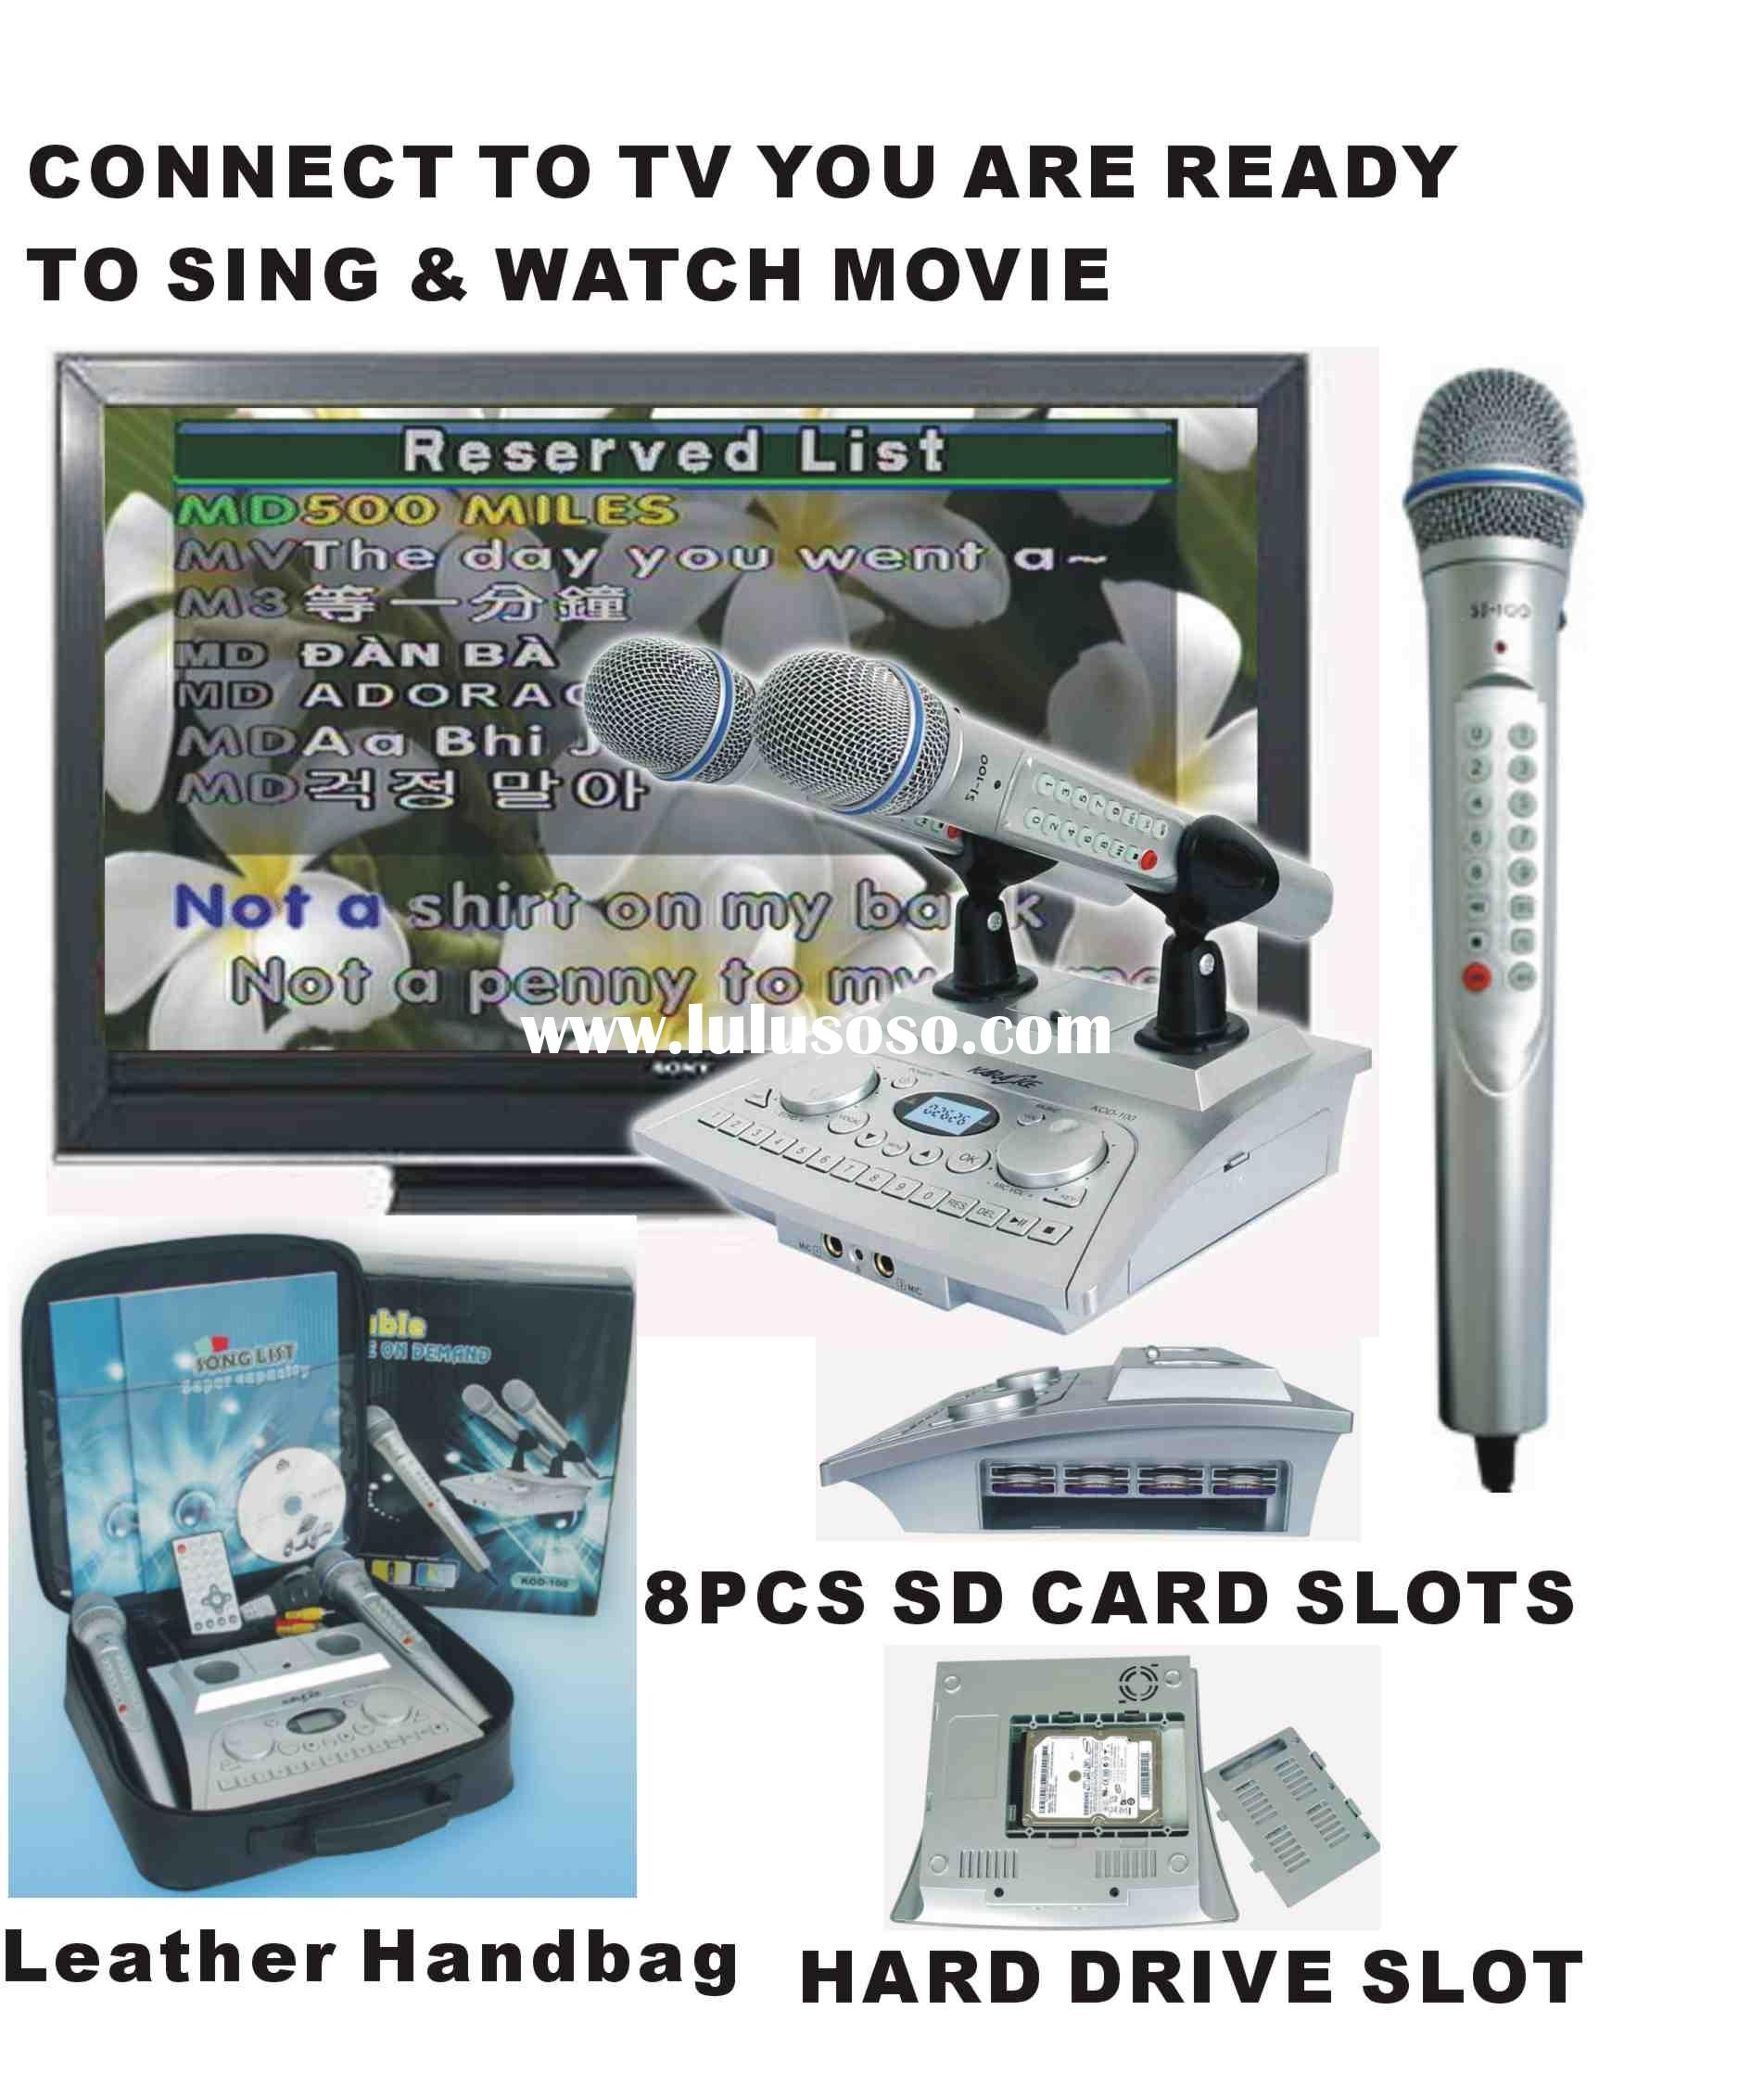 Portable karaoke player on demand+ Digit Microphone+8Pcs SD Card Slots+160GB Hard Disk(optional)